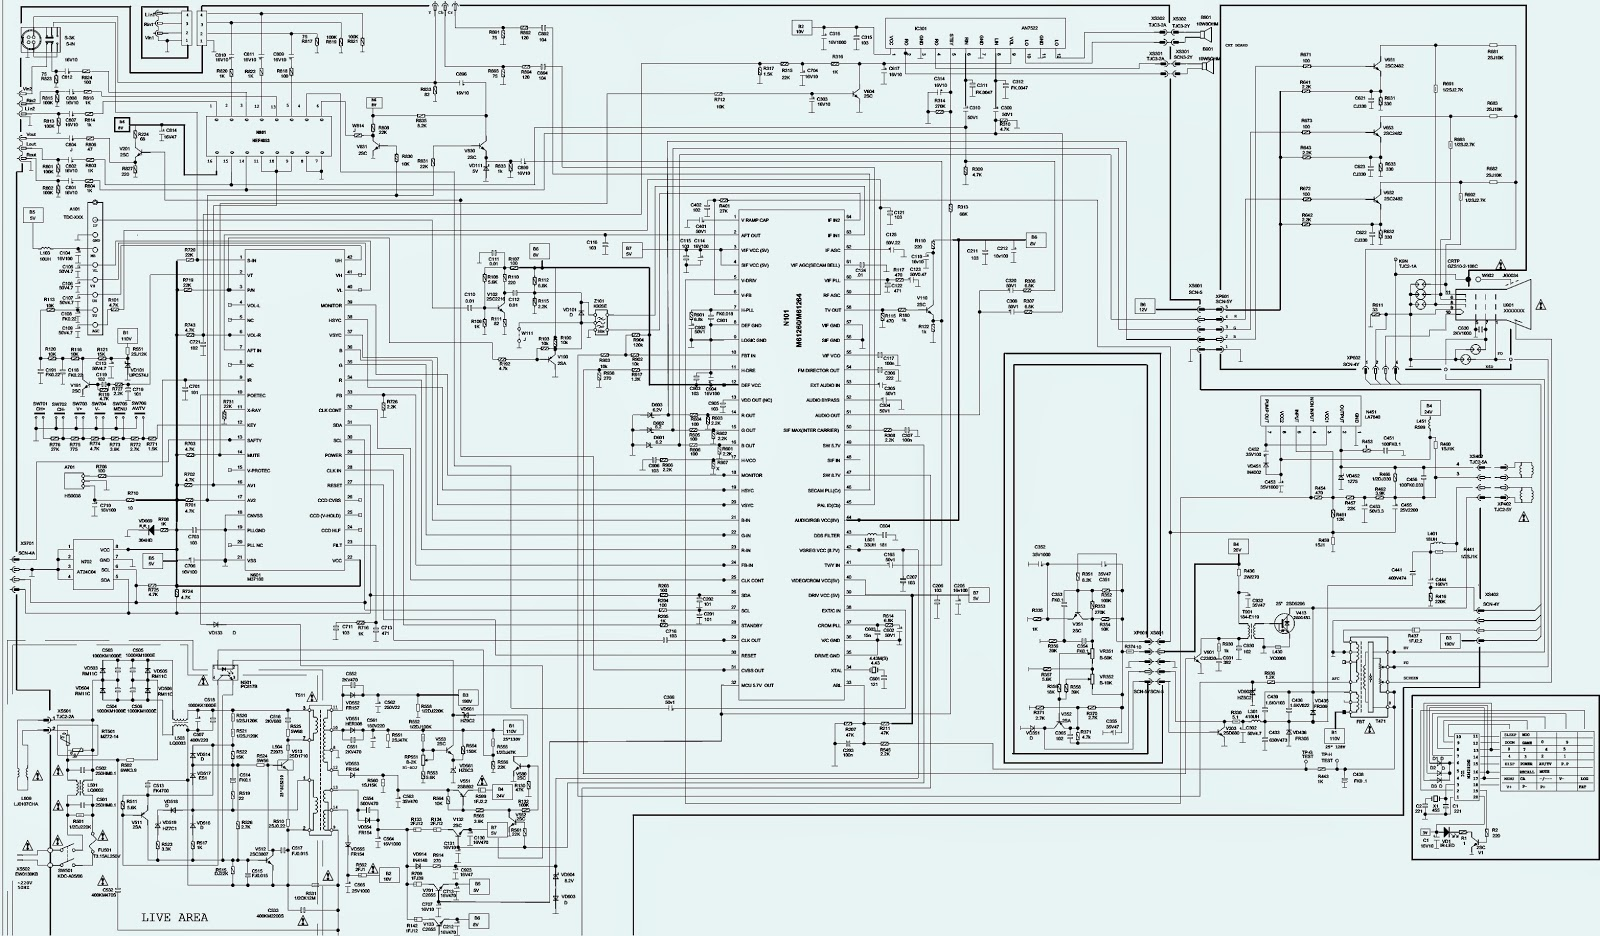 LG.bmp ics wiring diagram nortel compact ics \u2022 205 ufc co  at bakdesigns.co